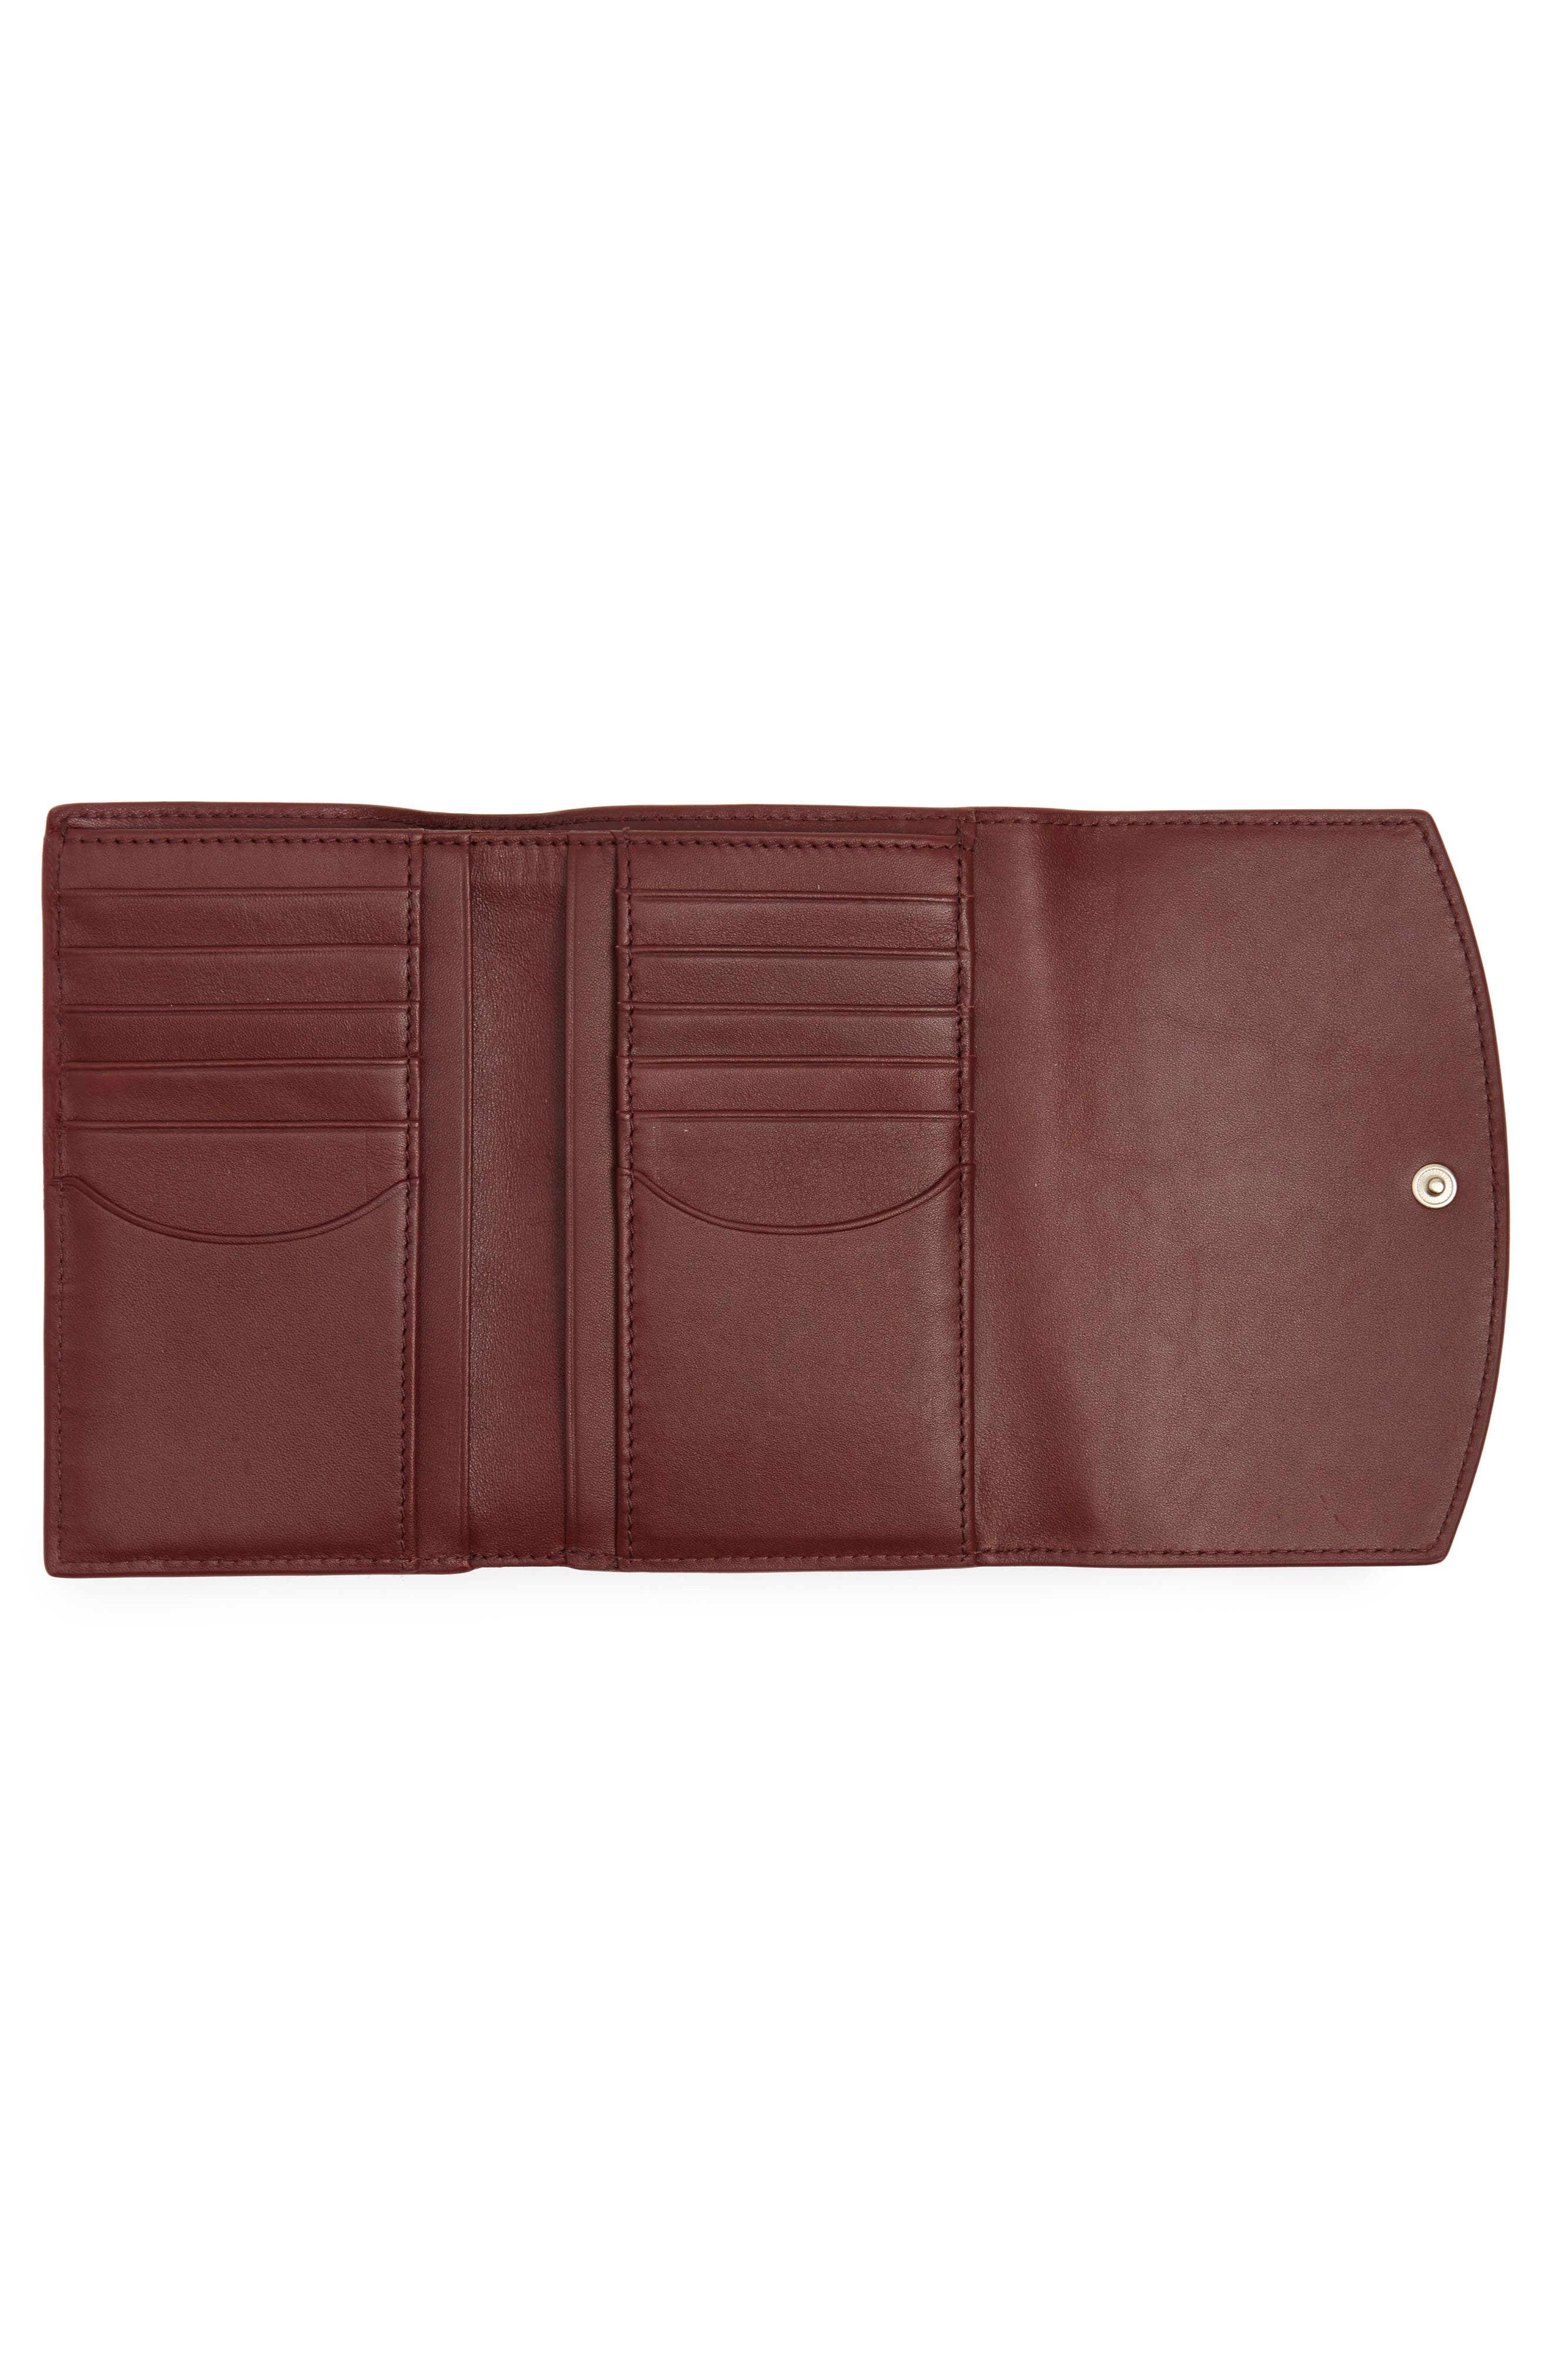 Compact Flap Leather Wallet,                             Alternate thumbnail 2, color,                             Cordovan